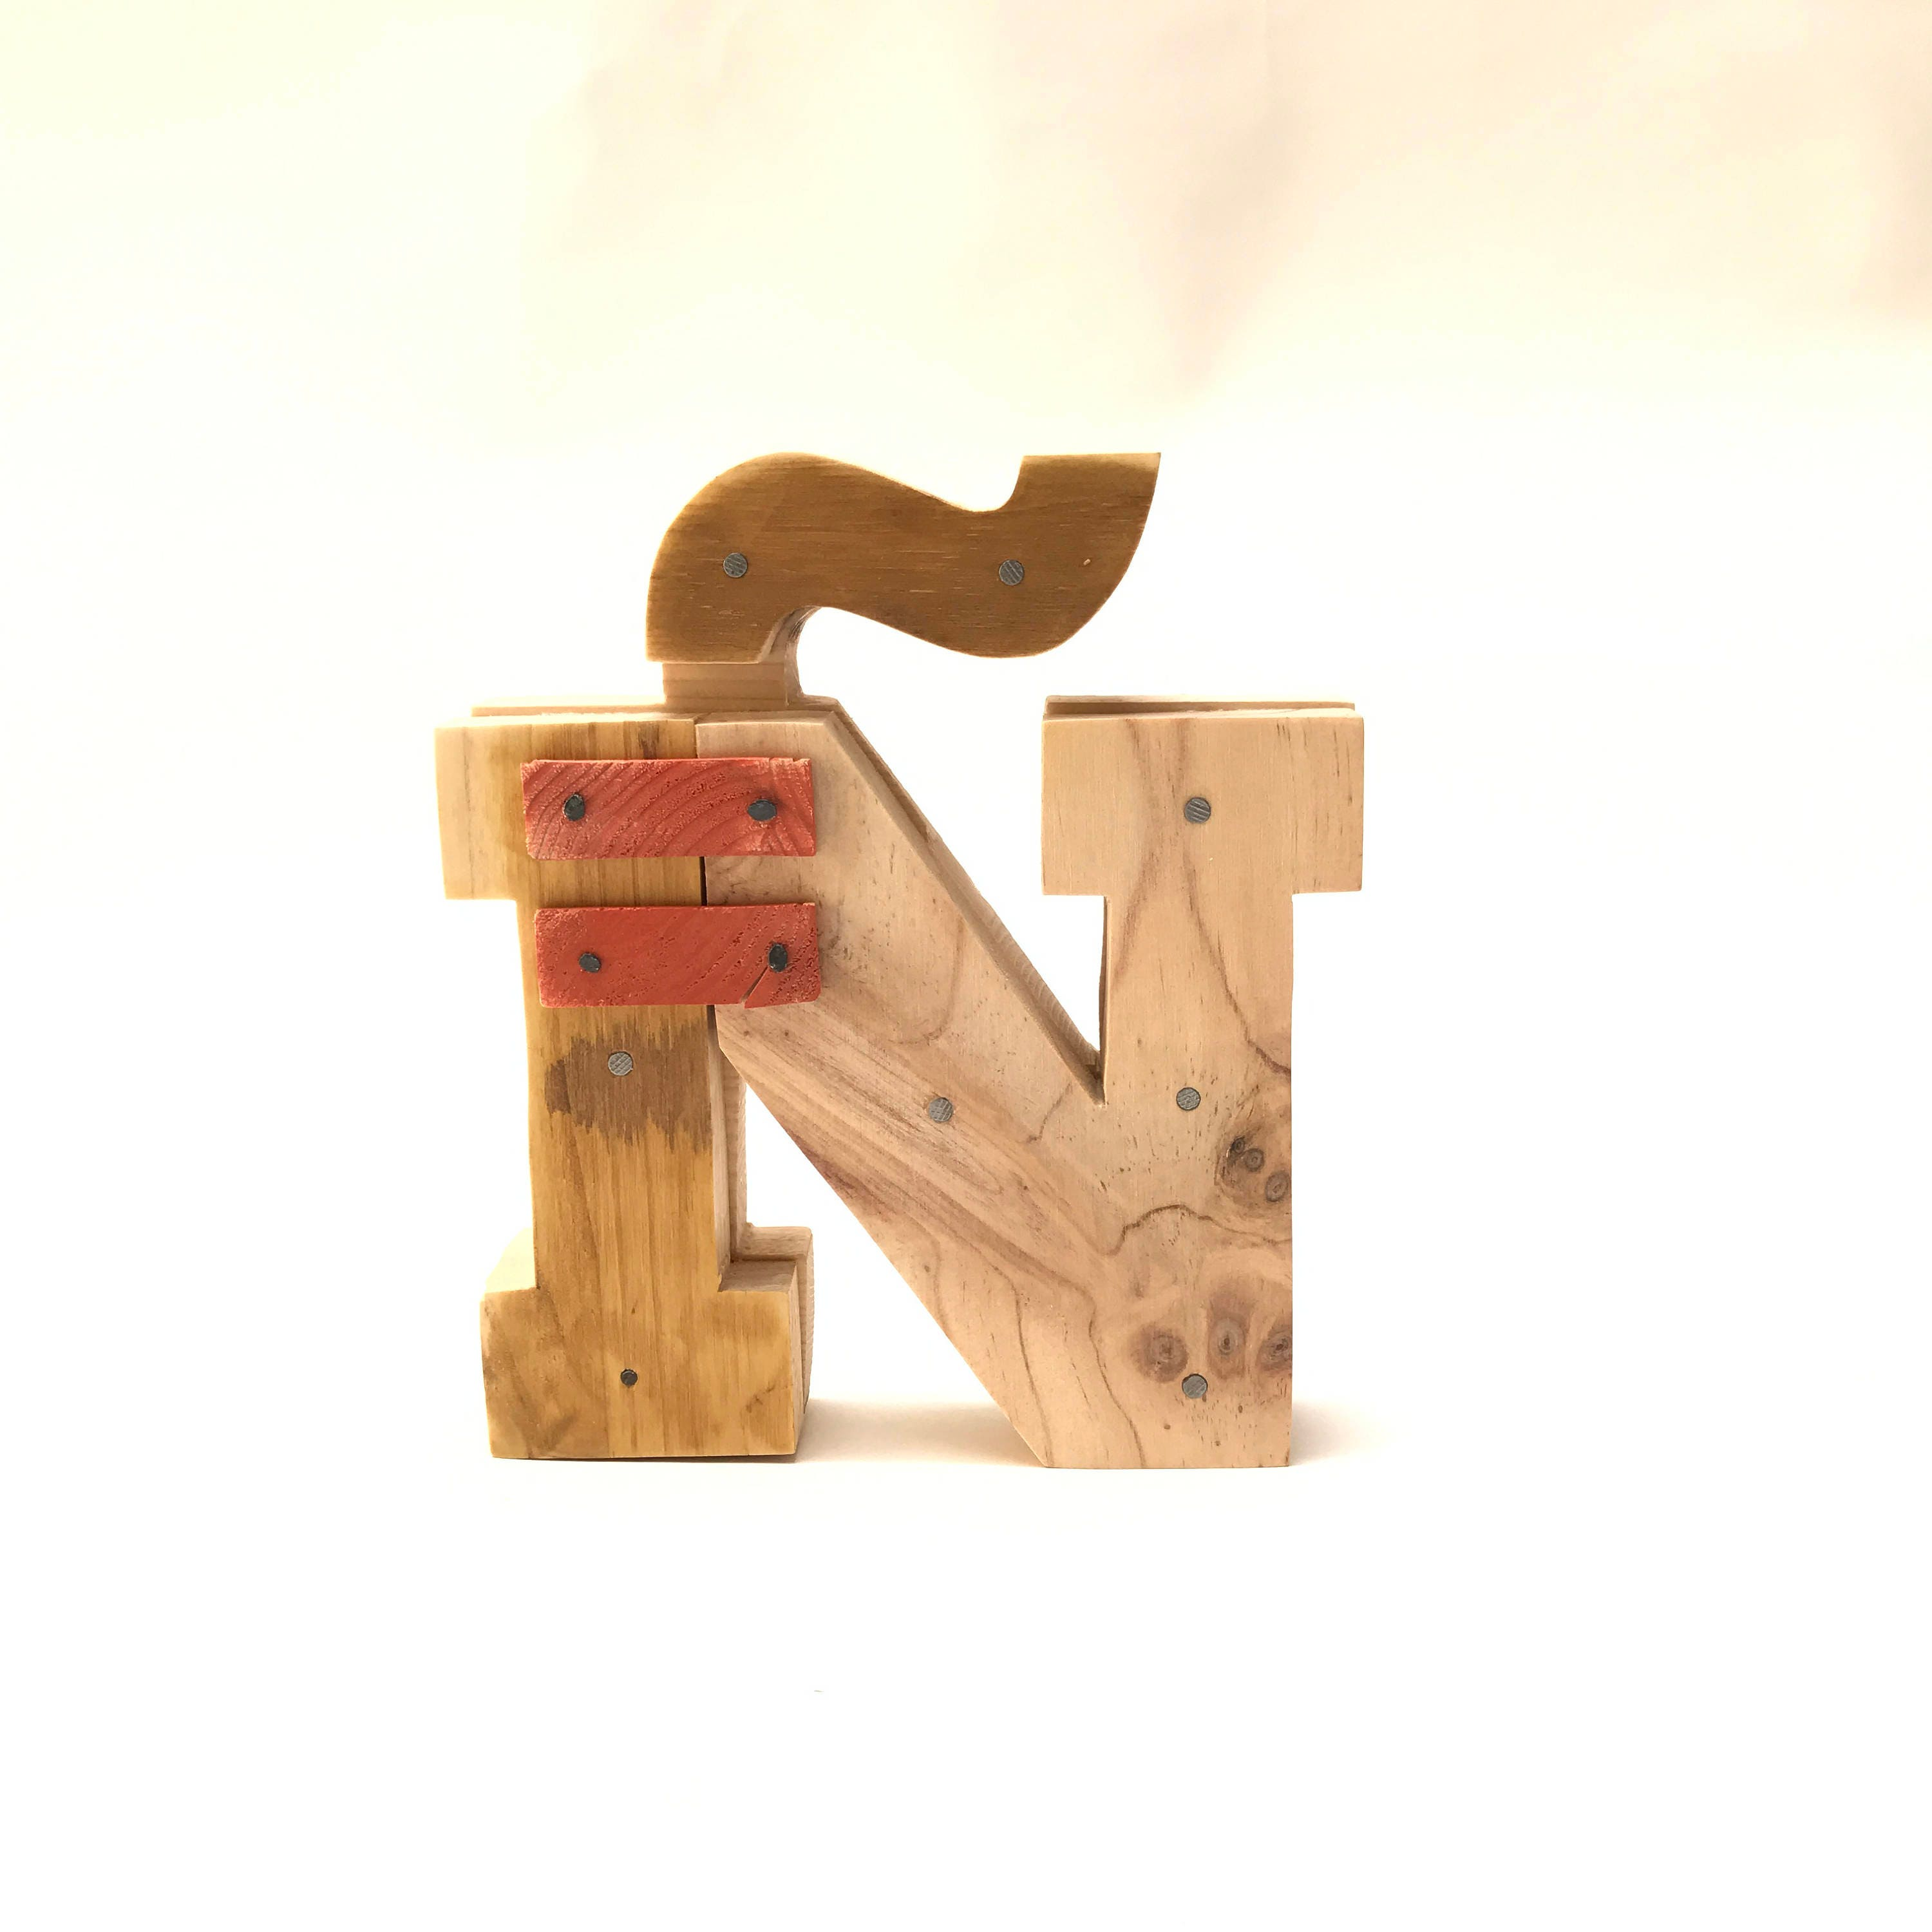 Industrial Letters Wall Hanging Wooden Letters Ñindustrial Letterswall Hanging